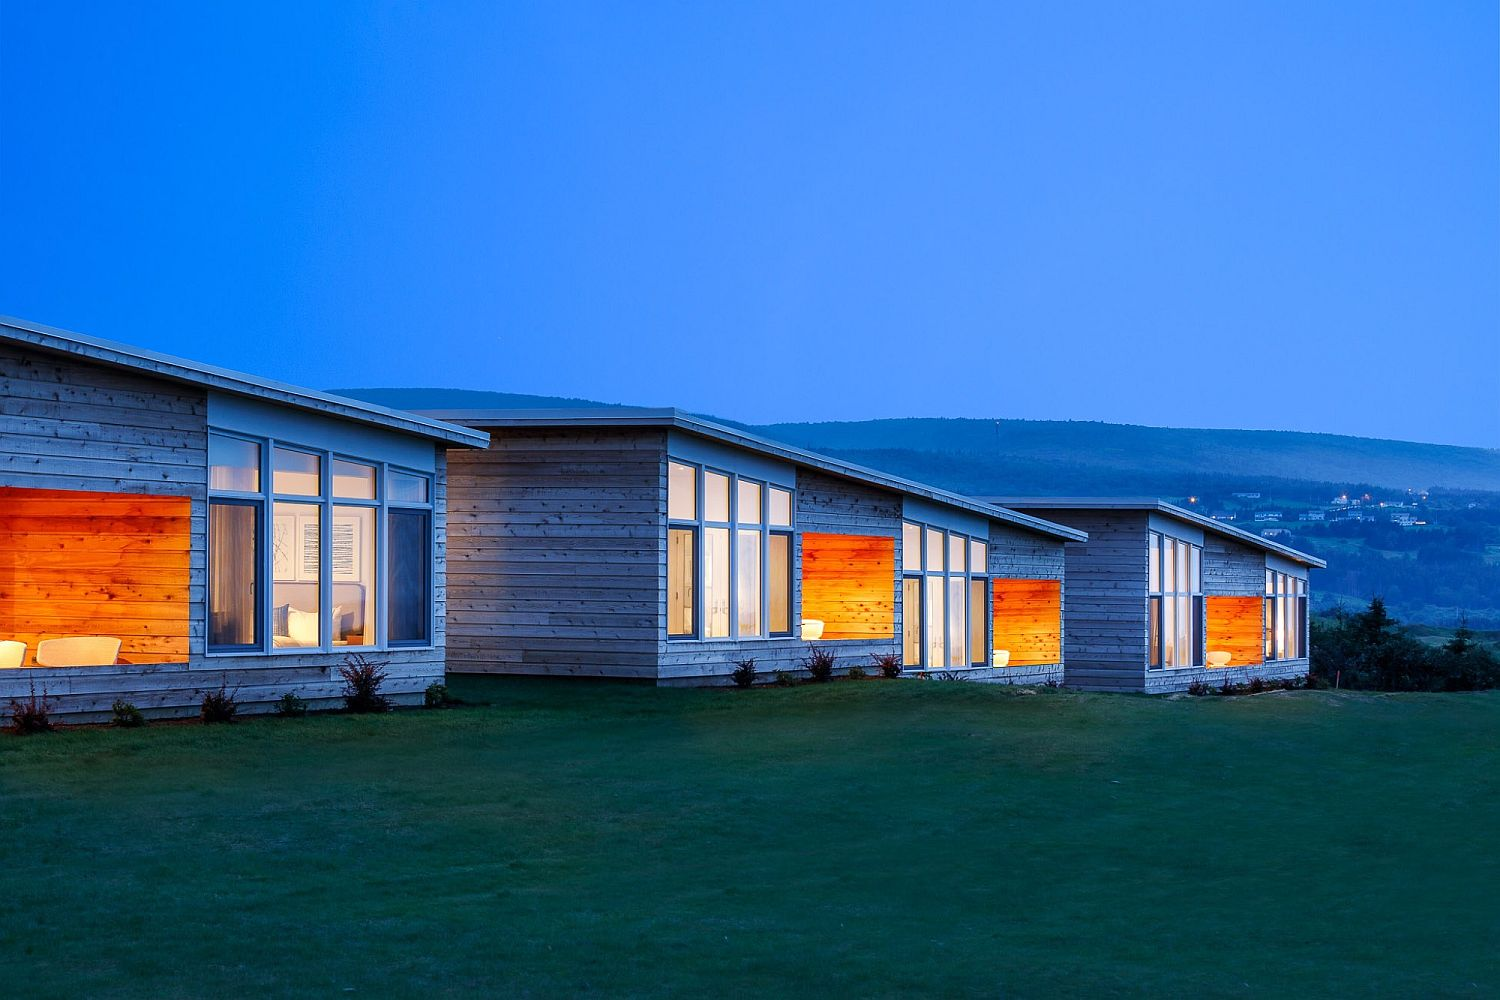 Lighting-adds-to-the-unique-aura-of-the-cabins-at-Cabot-Links